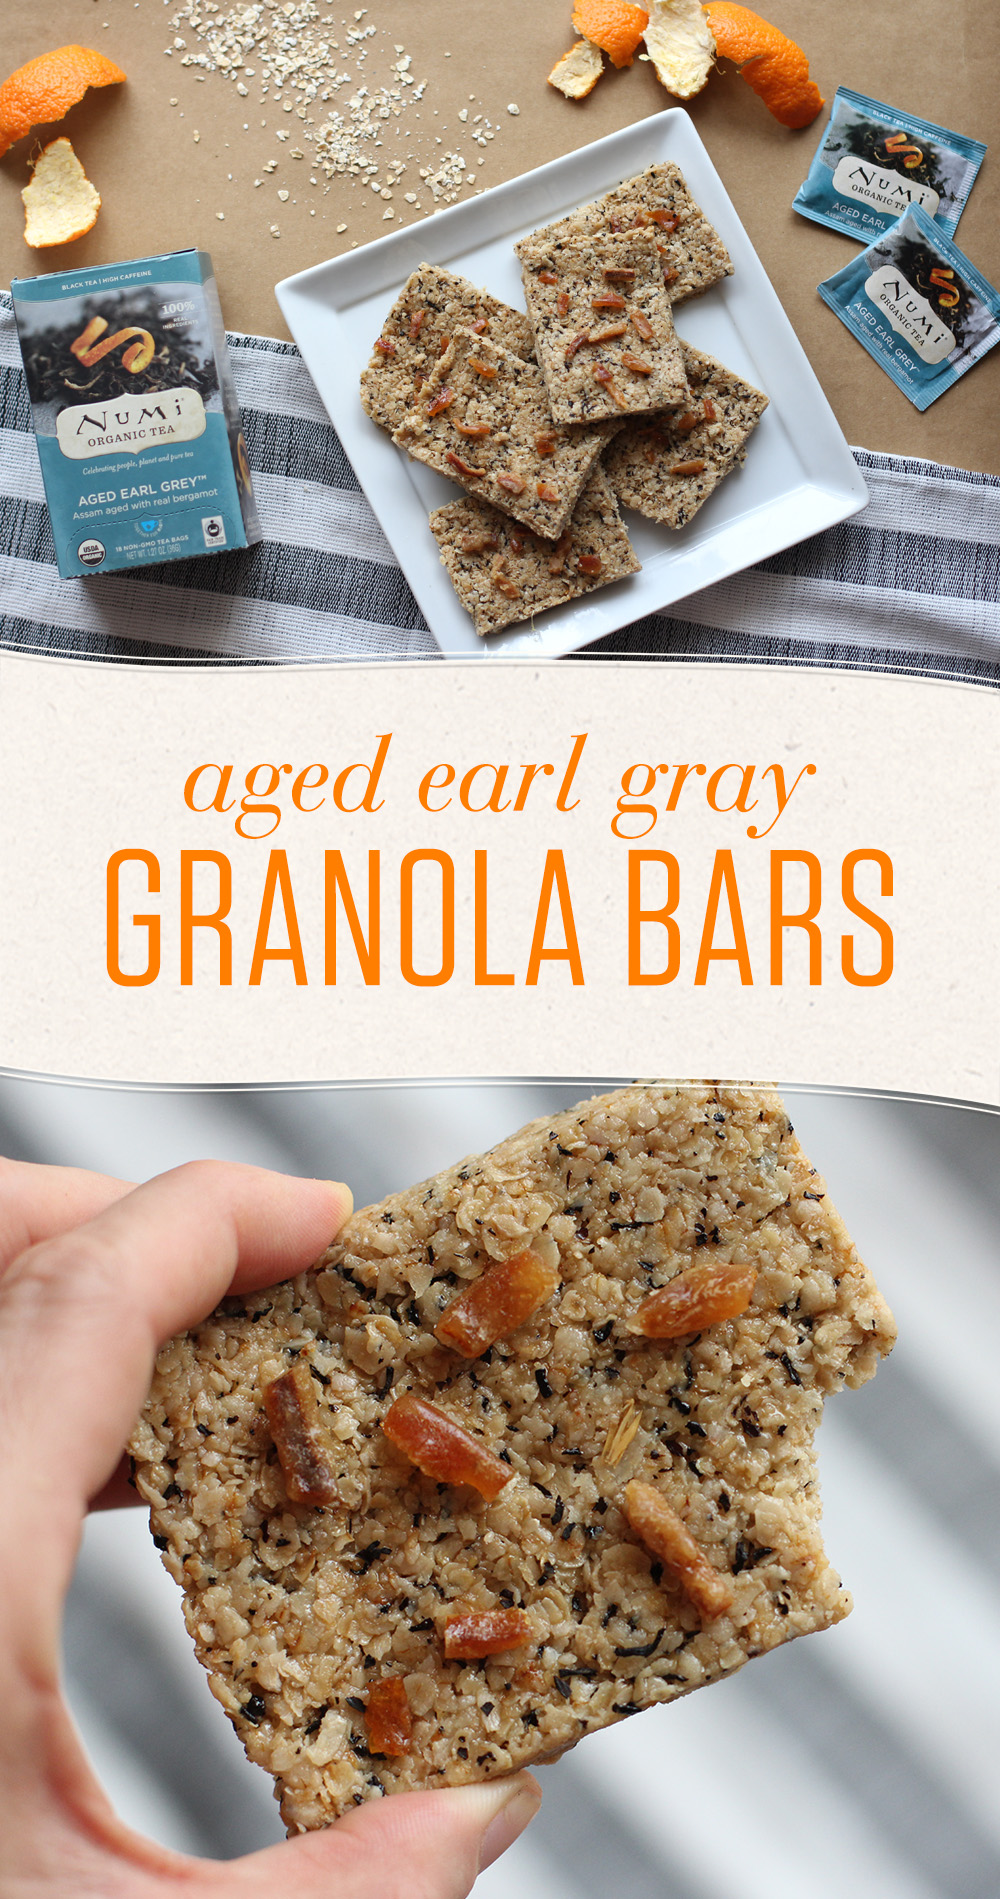 Add a Numi tea twist to homemade granola bars for on-the-go snacking without the heavy sugar and preservatives found in store-bought snacks.